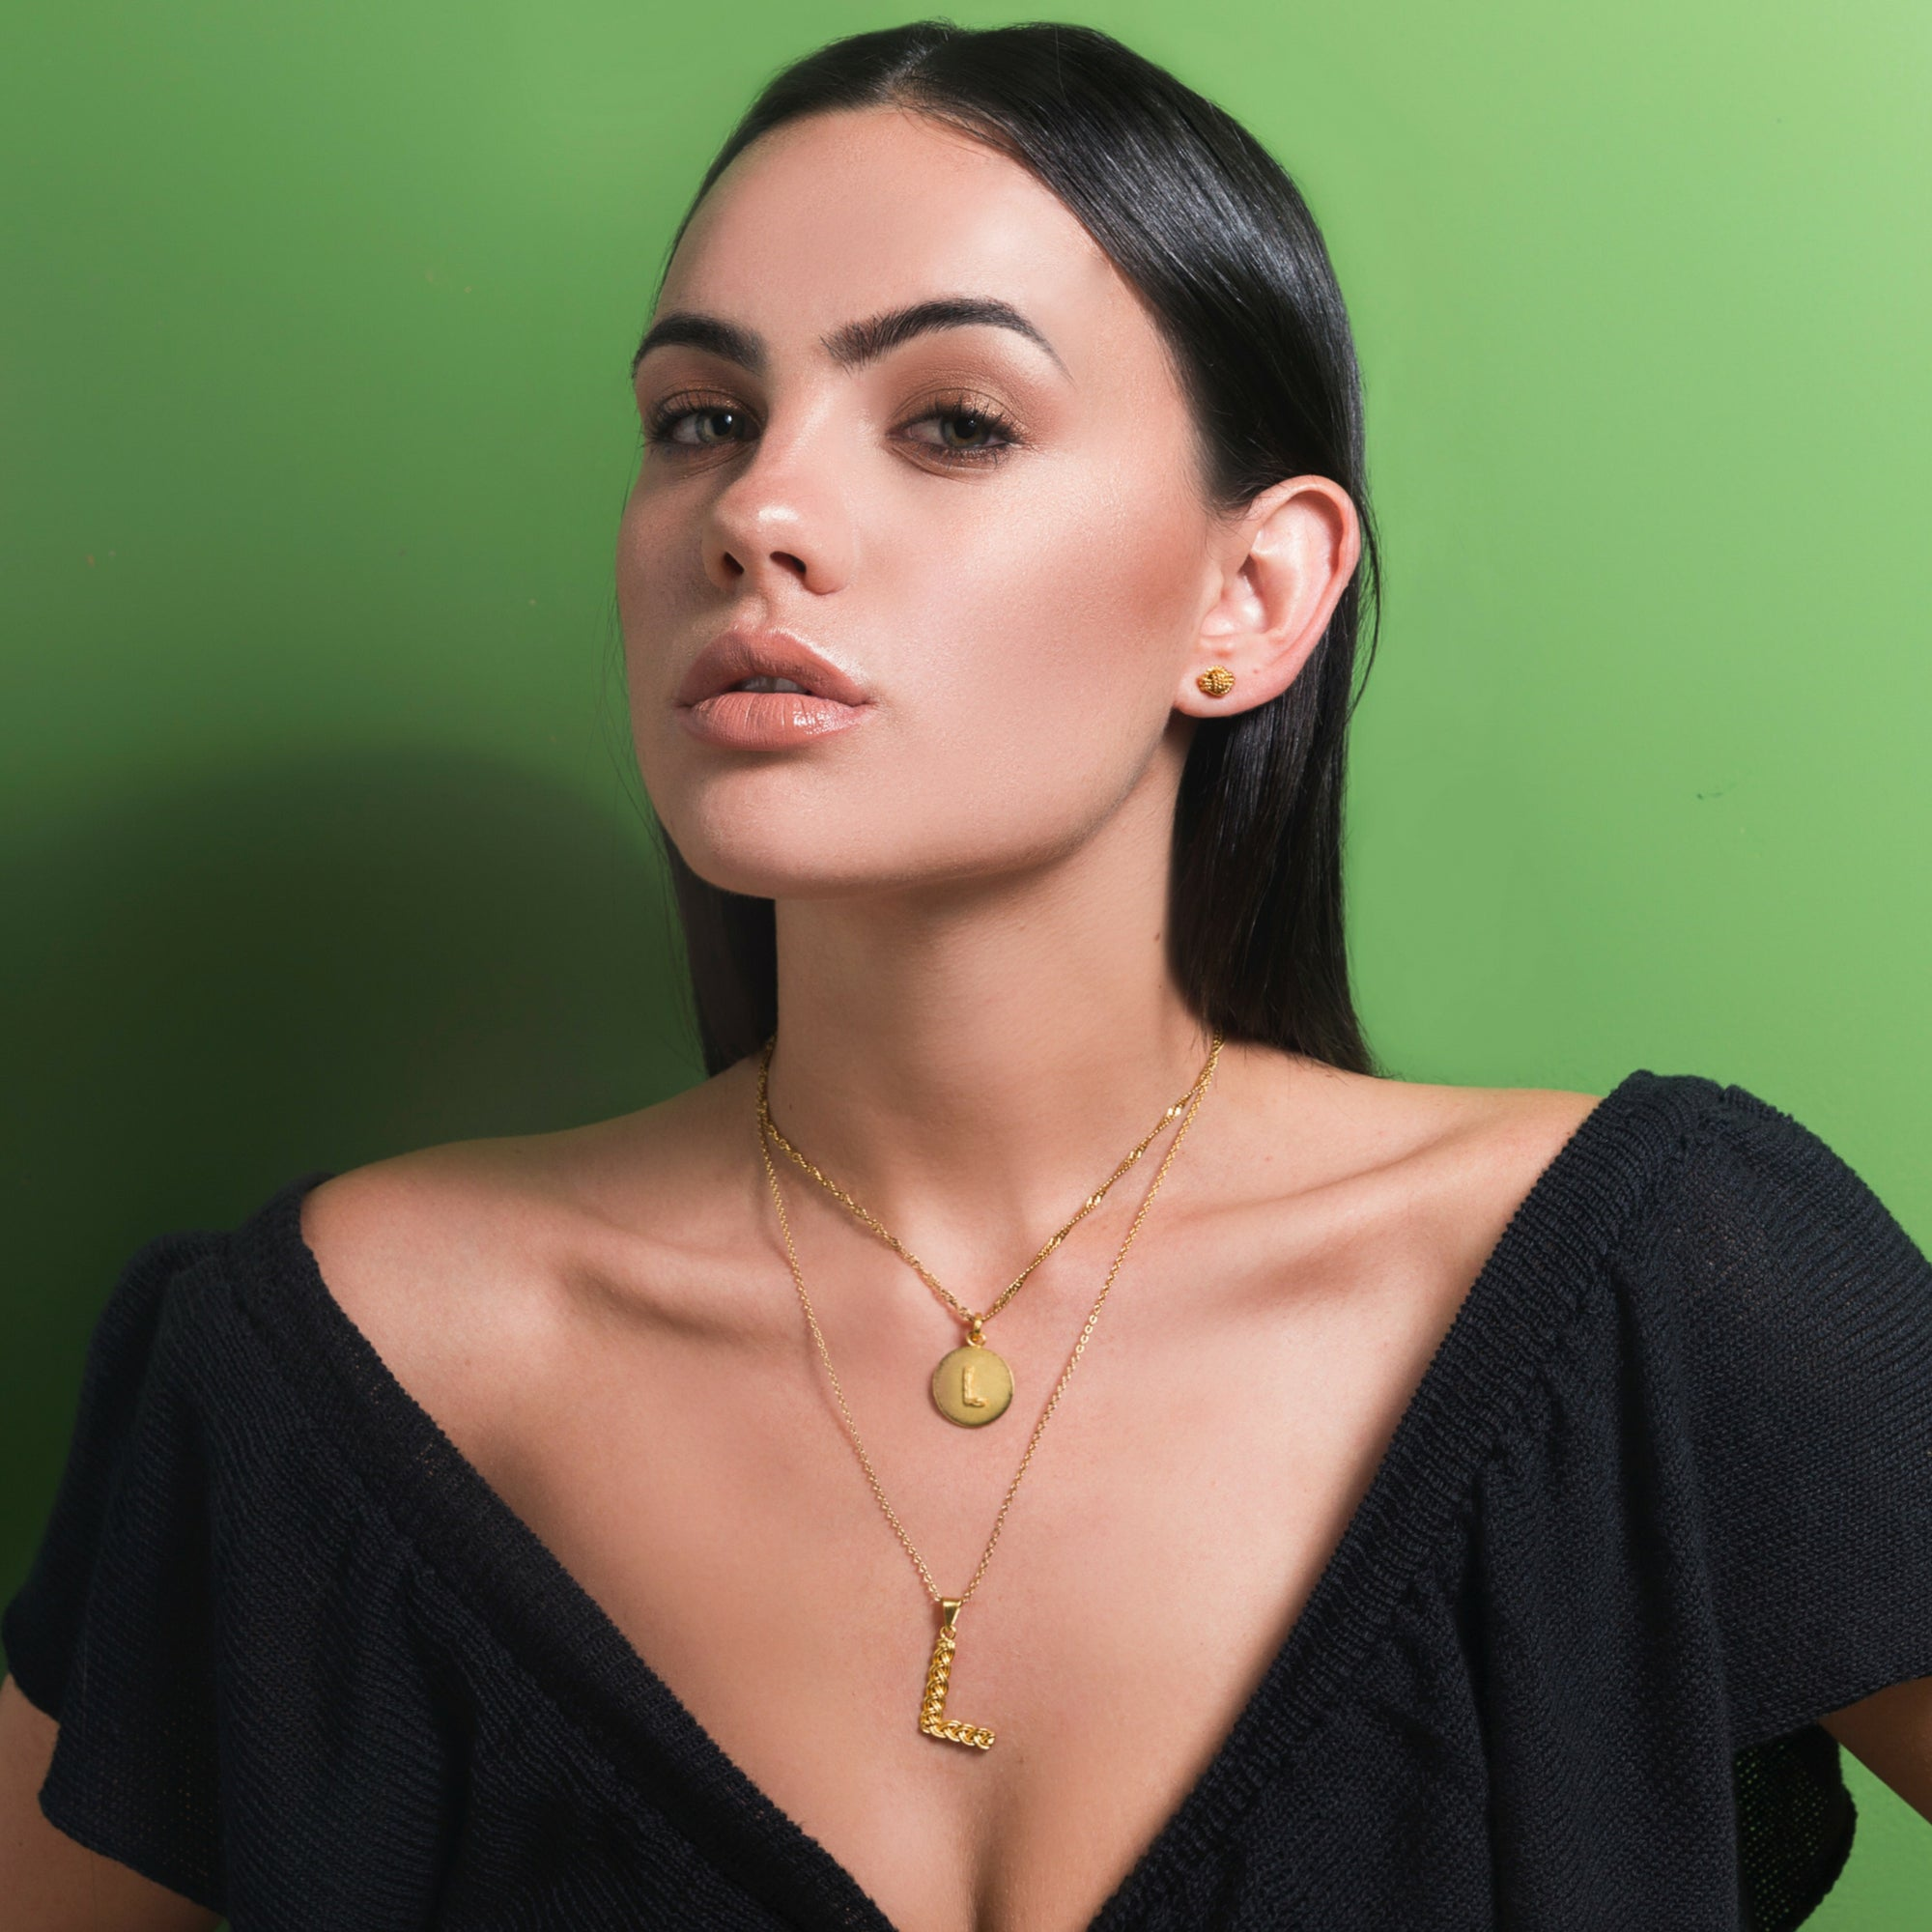 Liza Echeverry Jewelry Colombia Initials Capsule Collection Initial Necklace